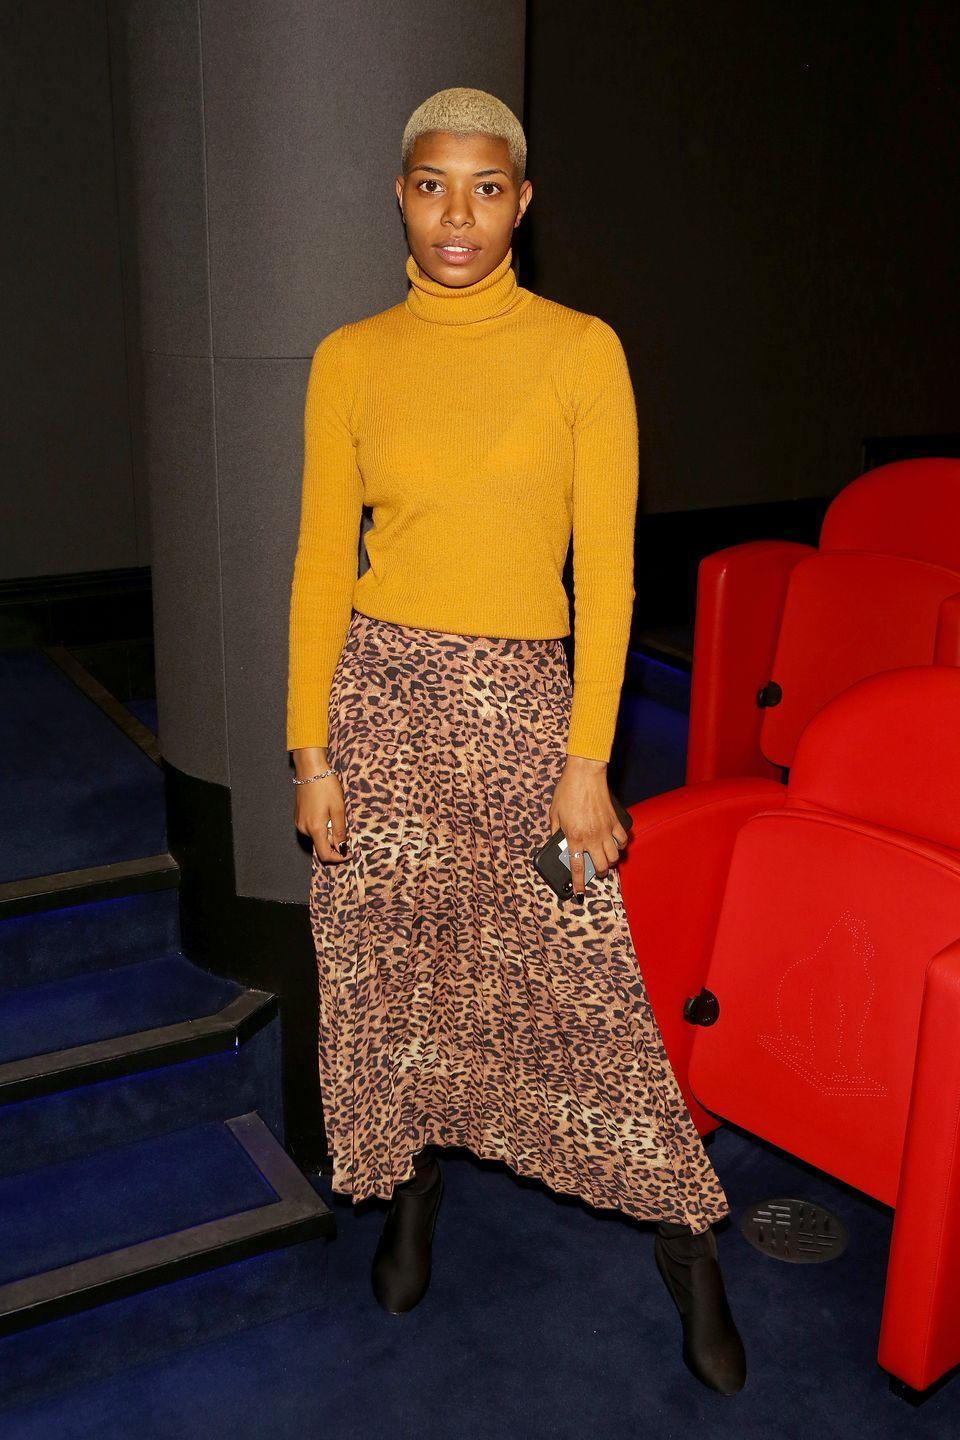 <p>This length can feel overwhelming, but don't panic – it's actually kind of amazing. Embrace the length with a wild leopard print, simple boots, and a bright sweater that clashes in the best way. <br><br></p>